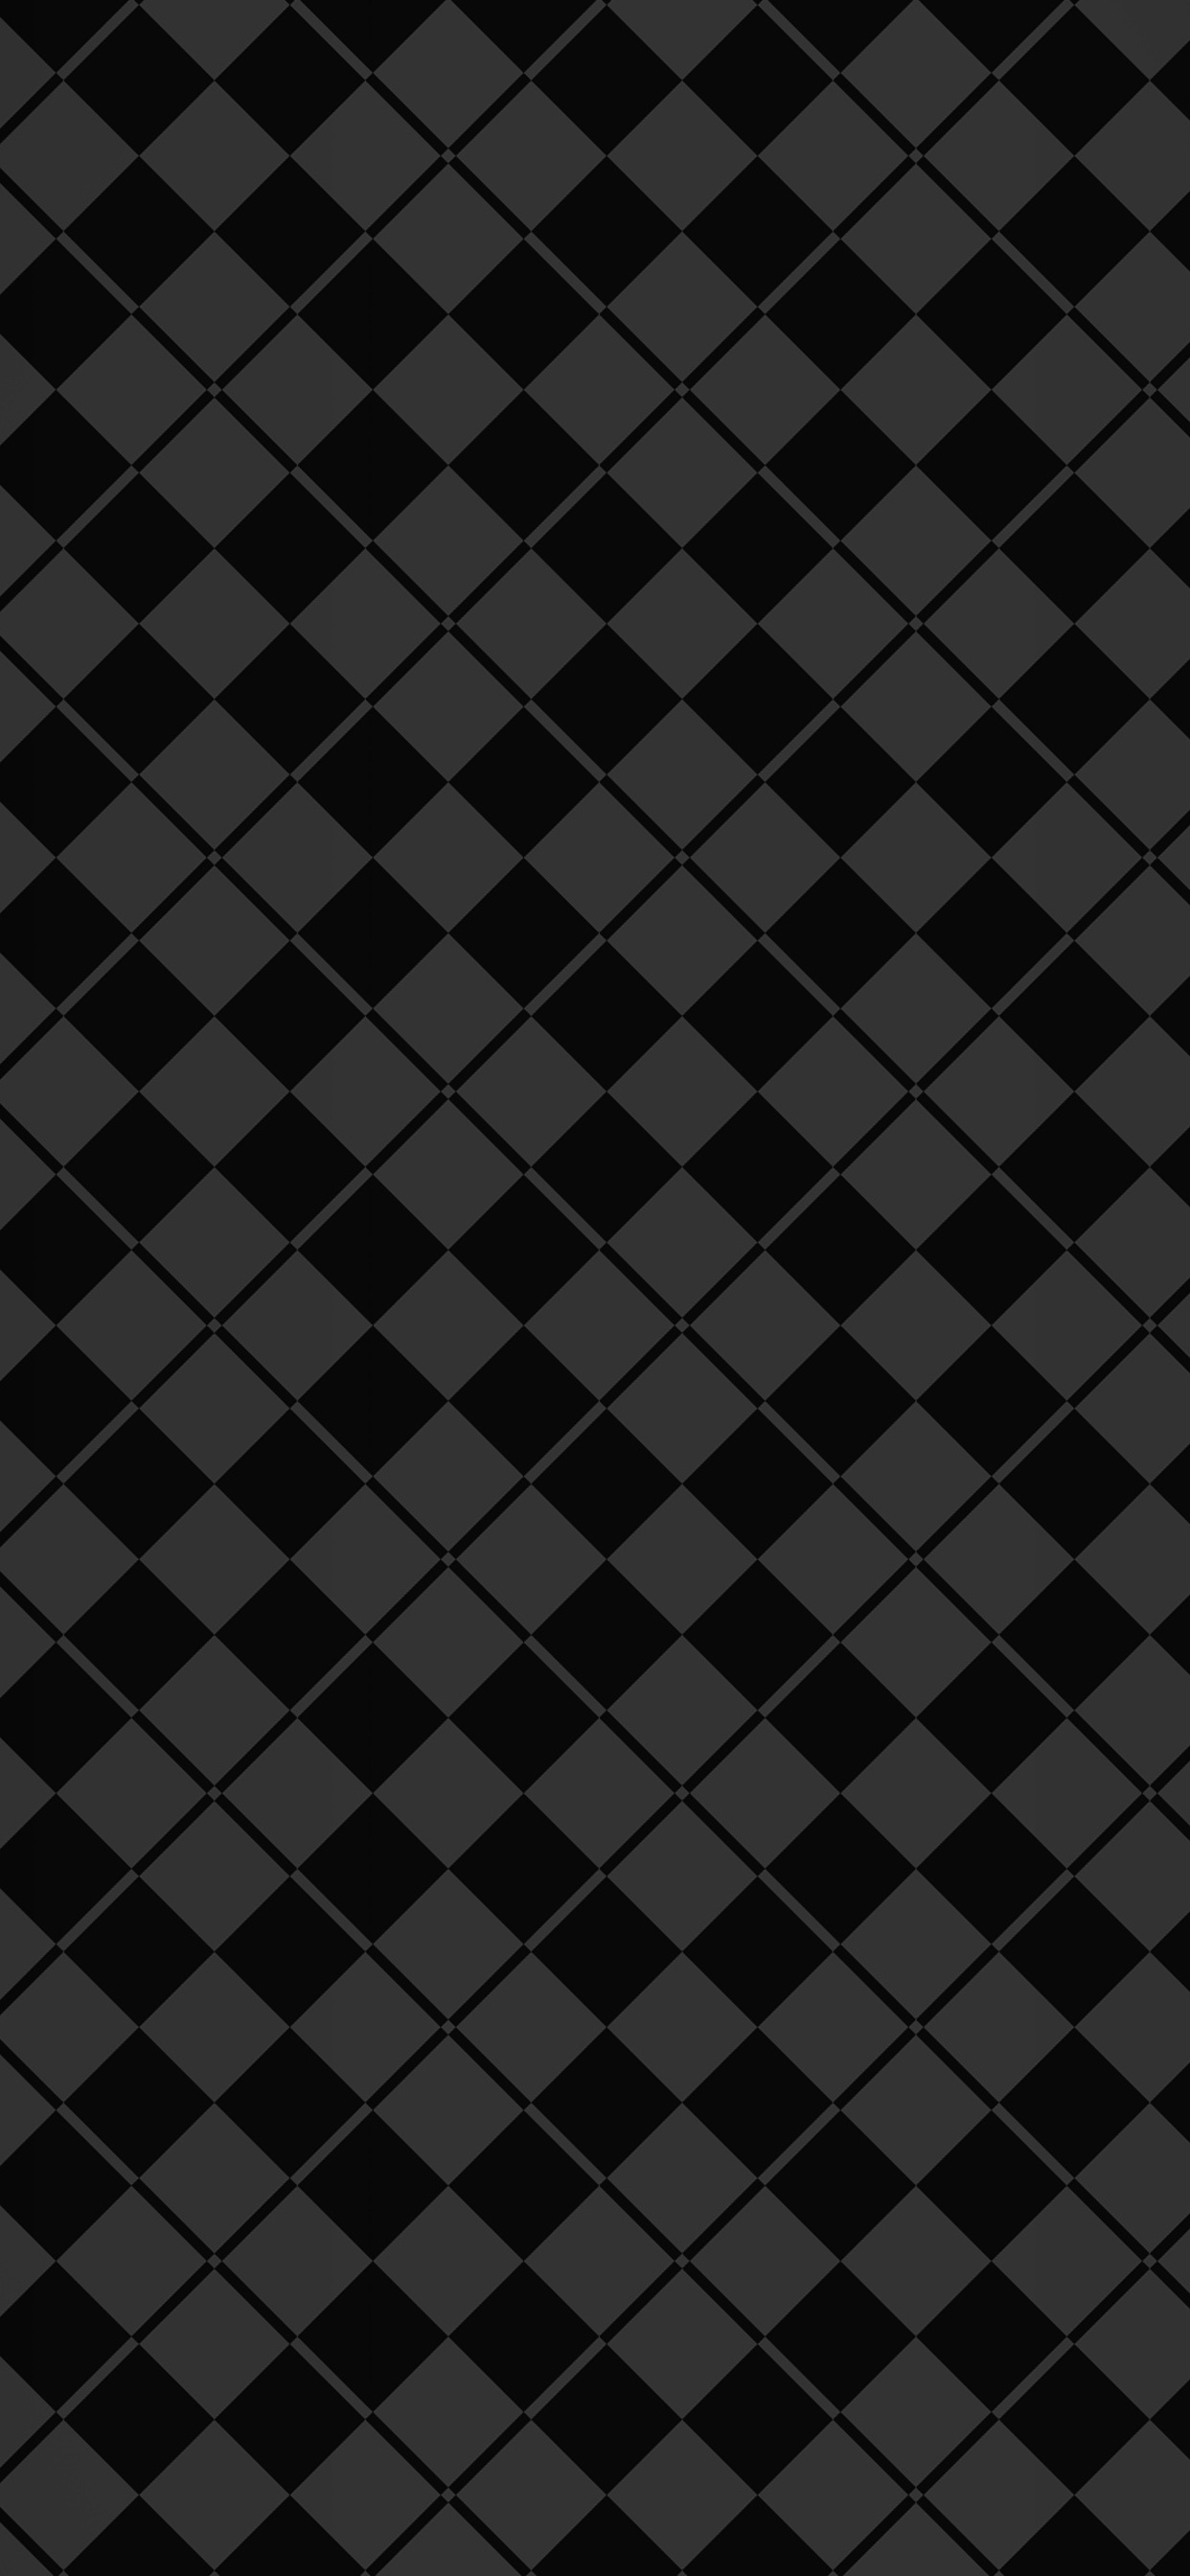 pattern-square-texture-4k-gn.jpg